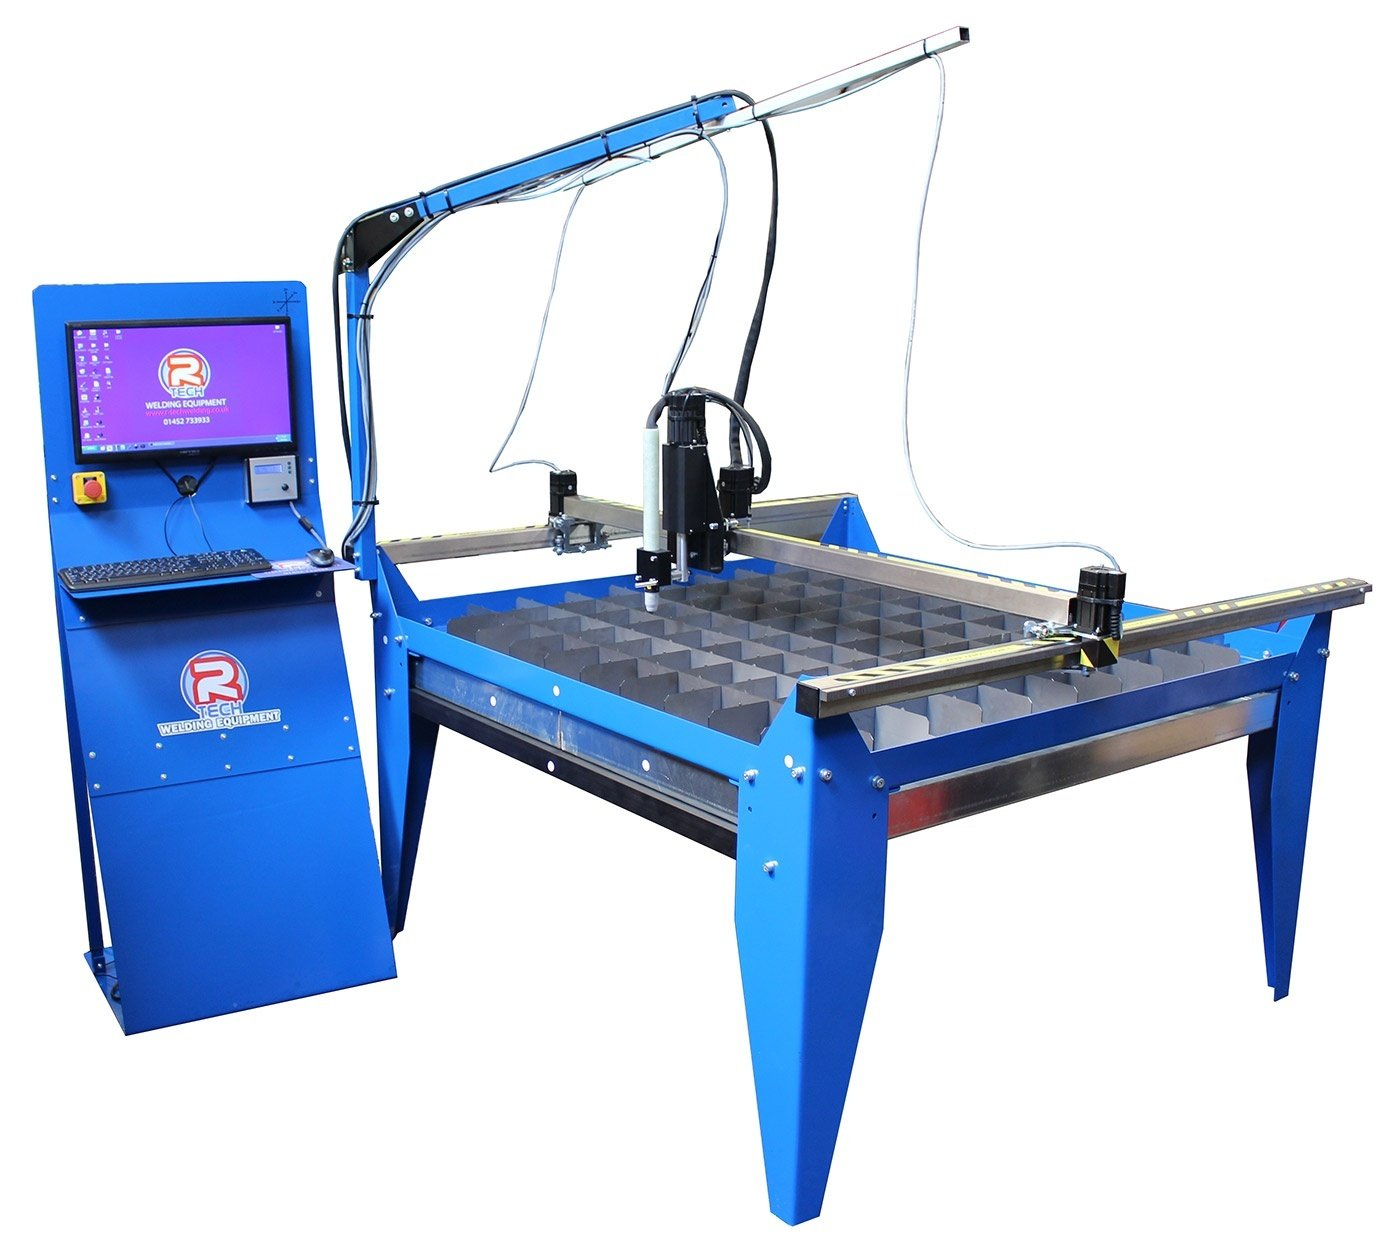 https://0201.nccdn.net/4_2/000/000/056/7dc/r-tech-cnc-plasma-table-and-console-complete-1400x1246.jpg